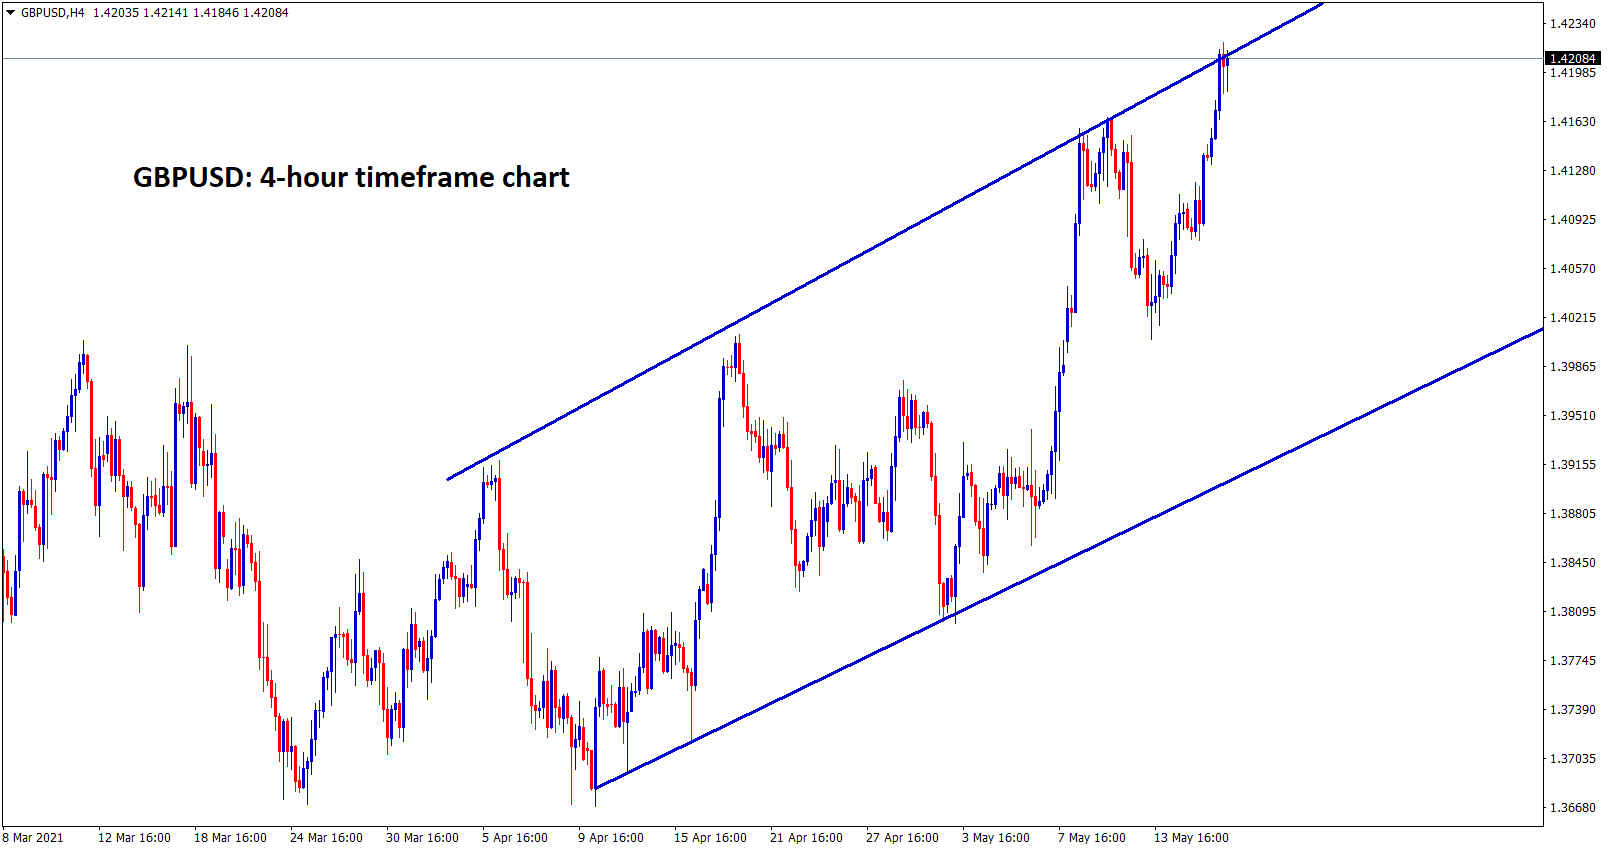 GBPUSD reaches the higher high zone of an Ascending channel.